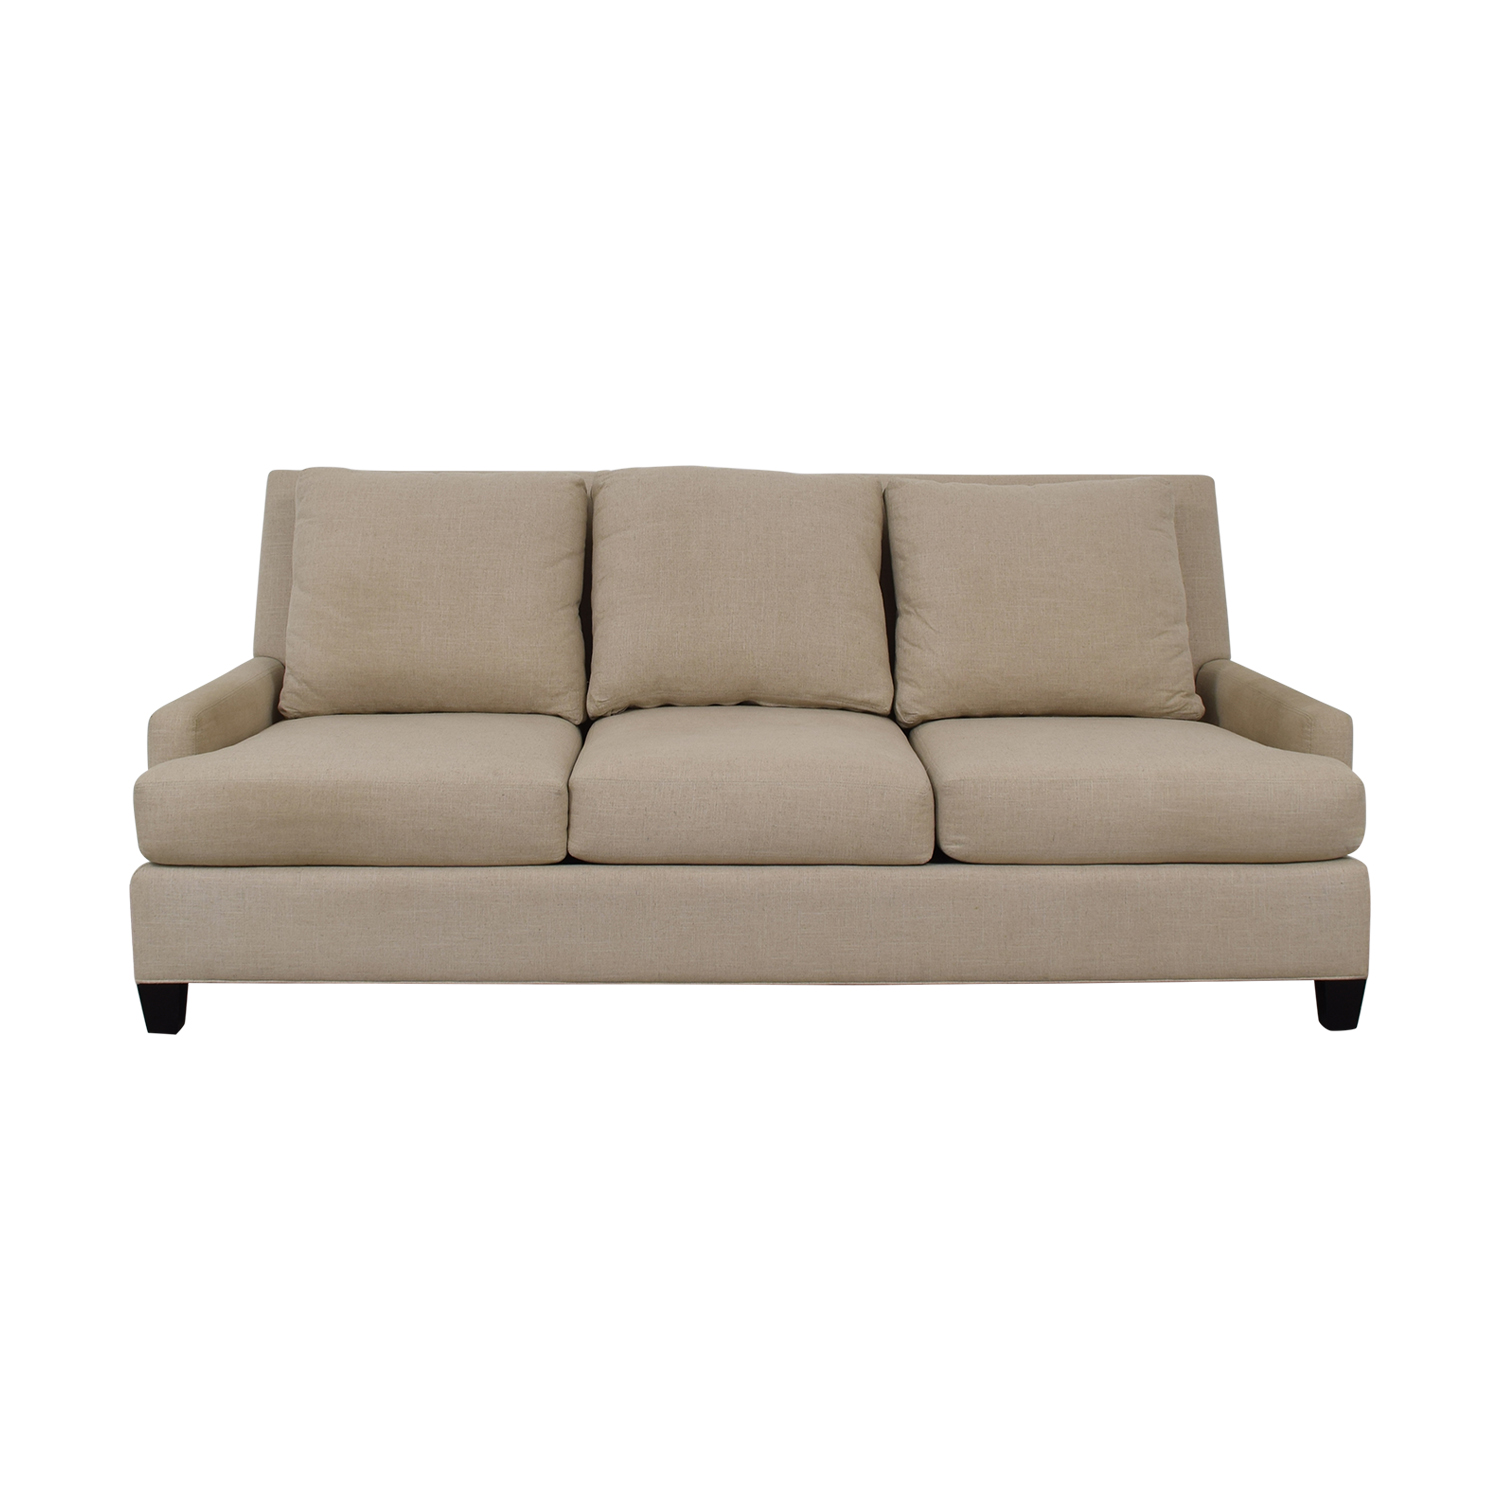 CR Laine CR Laine Woven Beige Sofa coupon